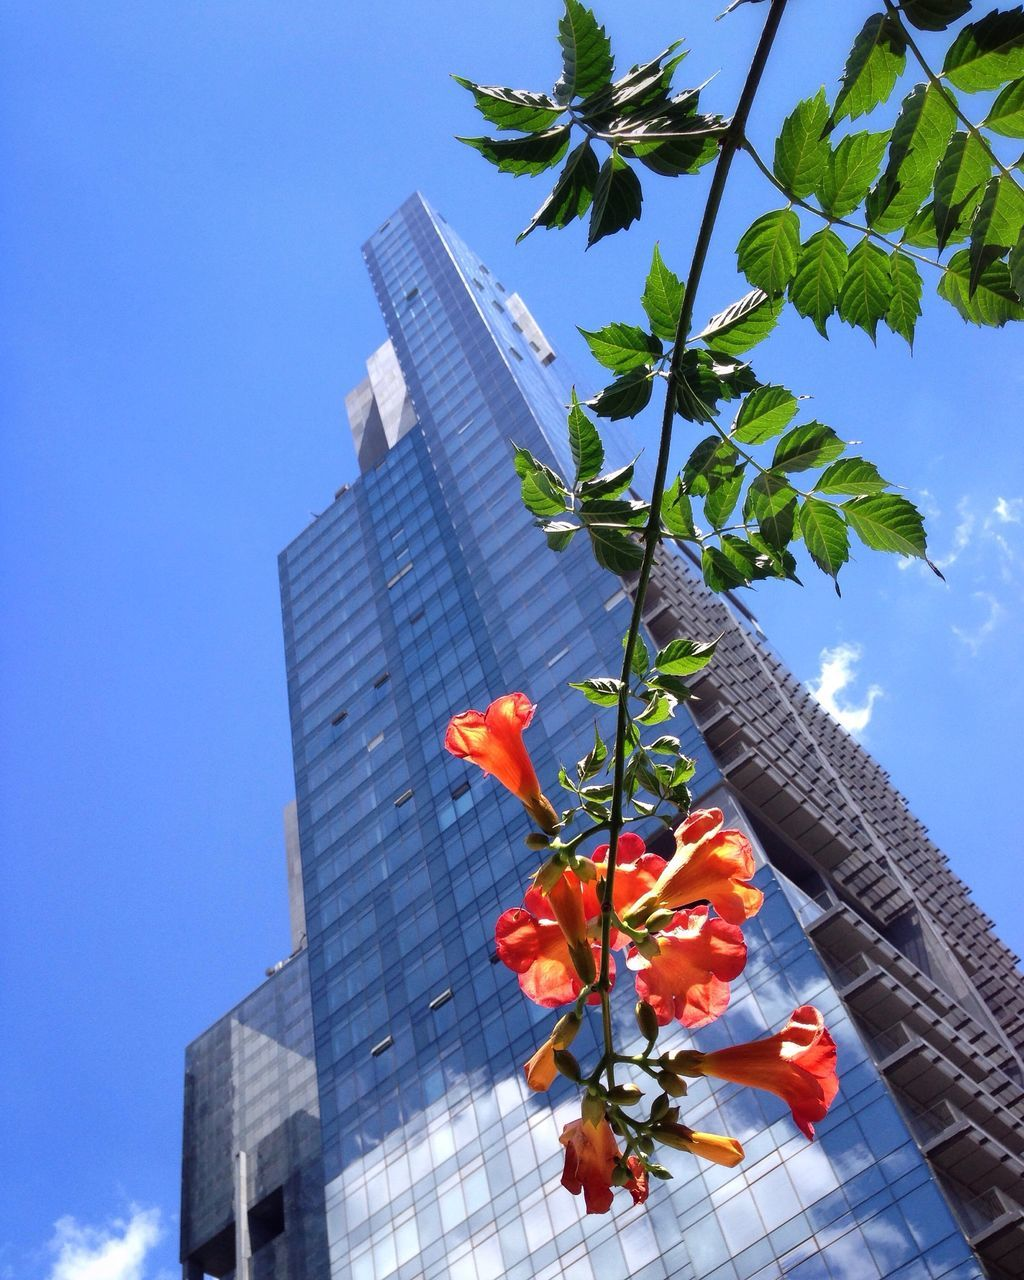 building exterior, built structure, architecture, low angle view, growth, day, leaf, no people, skyscraper, tree, outdoors, blue, flower, plant, sky, modern, branch, freshness, clear sky, city, nature